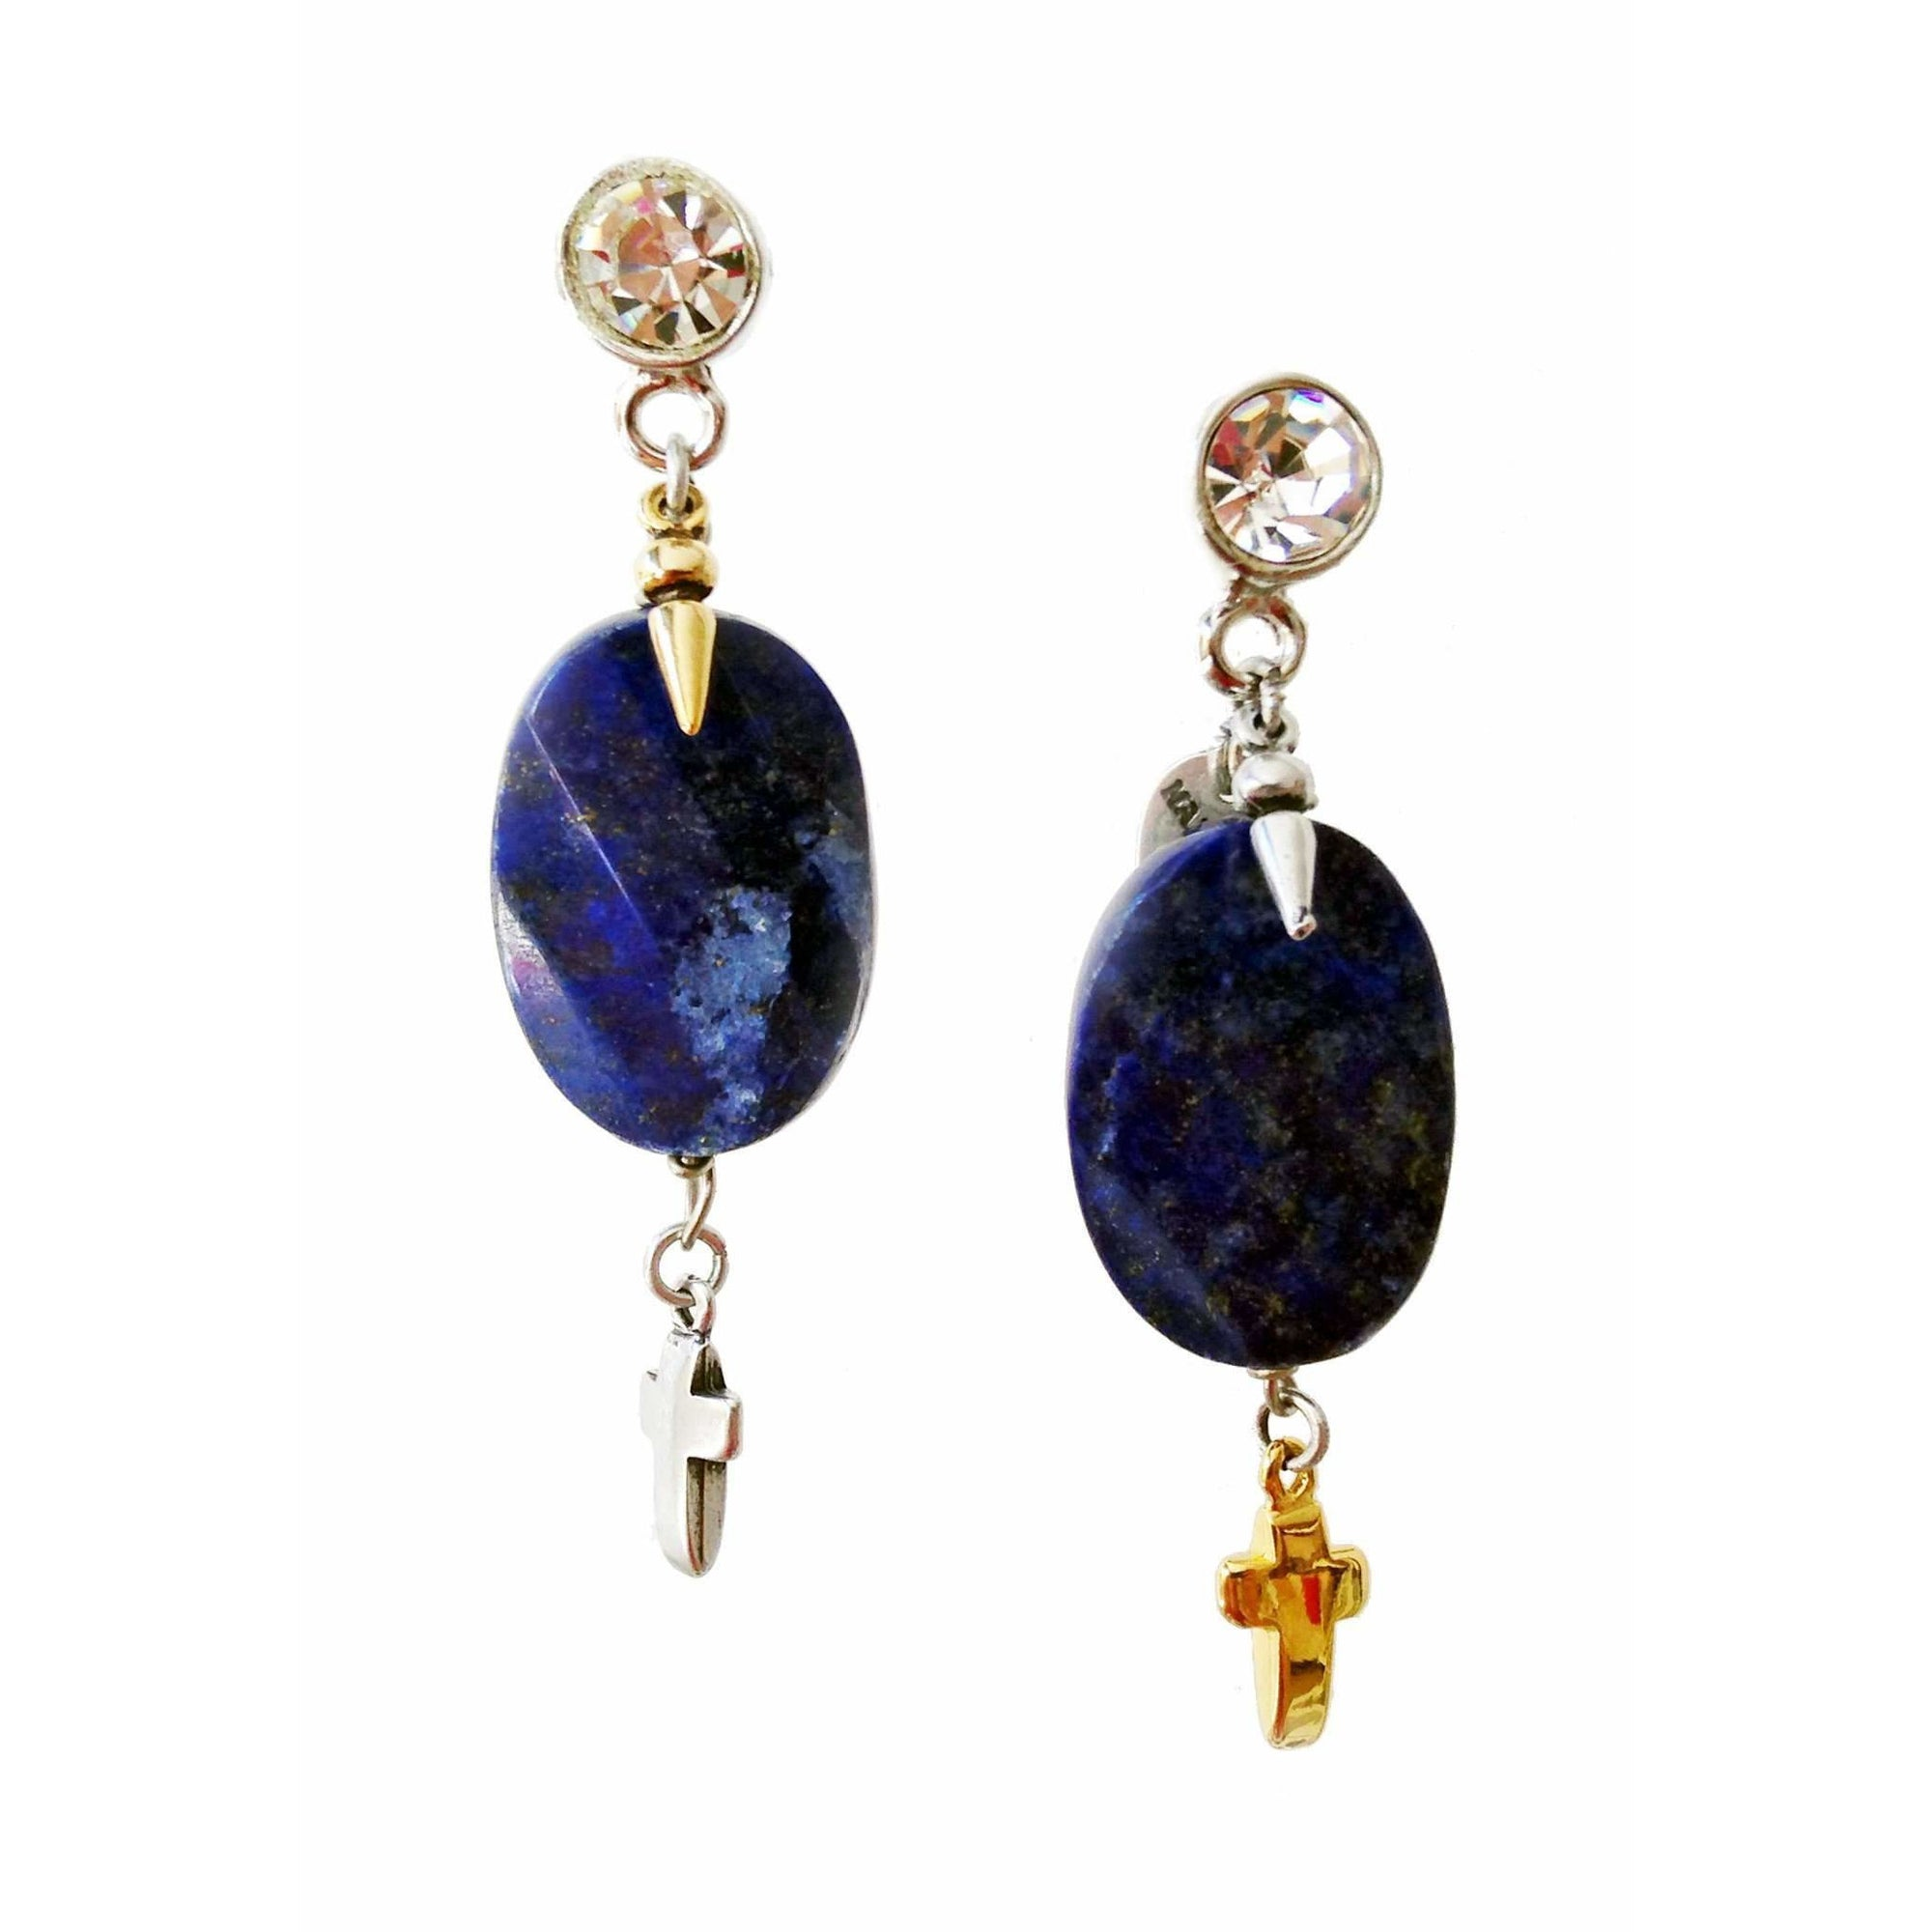 Dangle and Drop Earrings With Blue Lapis Lazuli Stones, Rhinestones, Brass and Charms - Miraposa